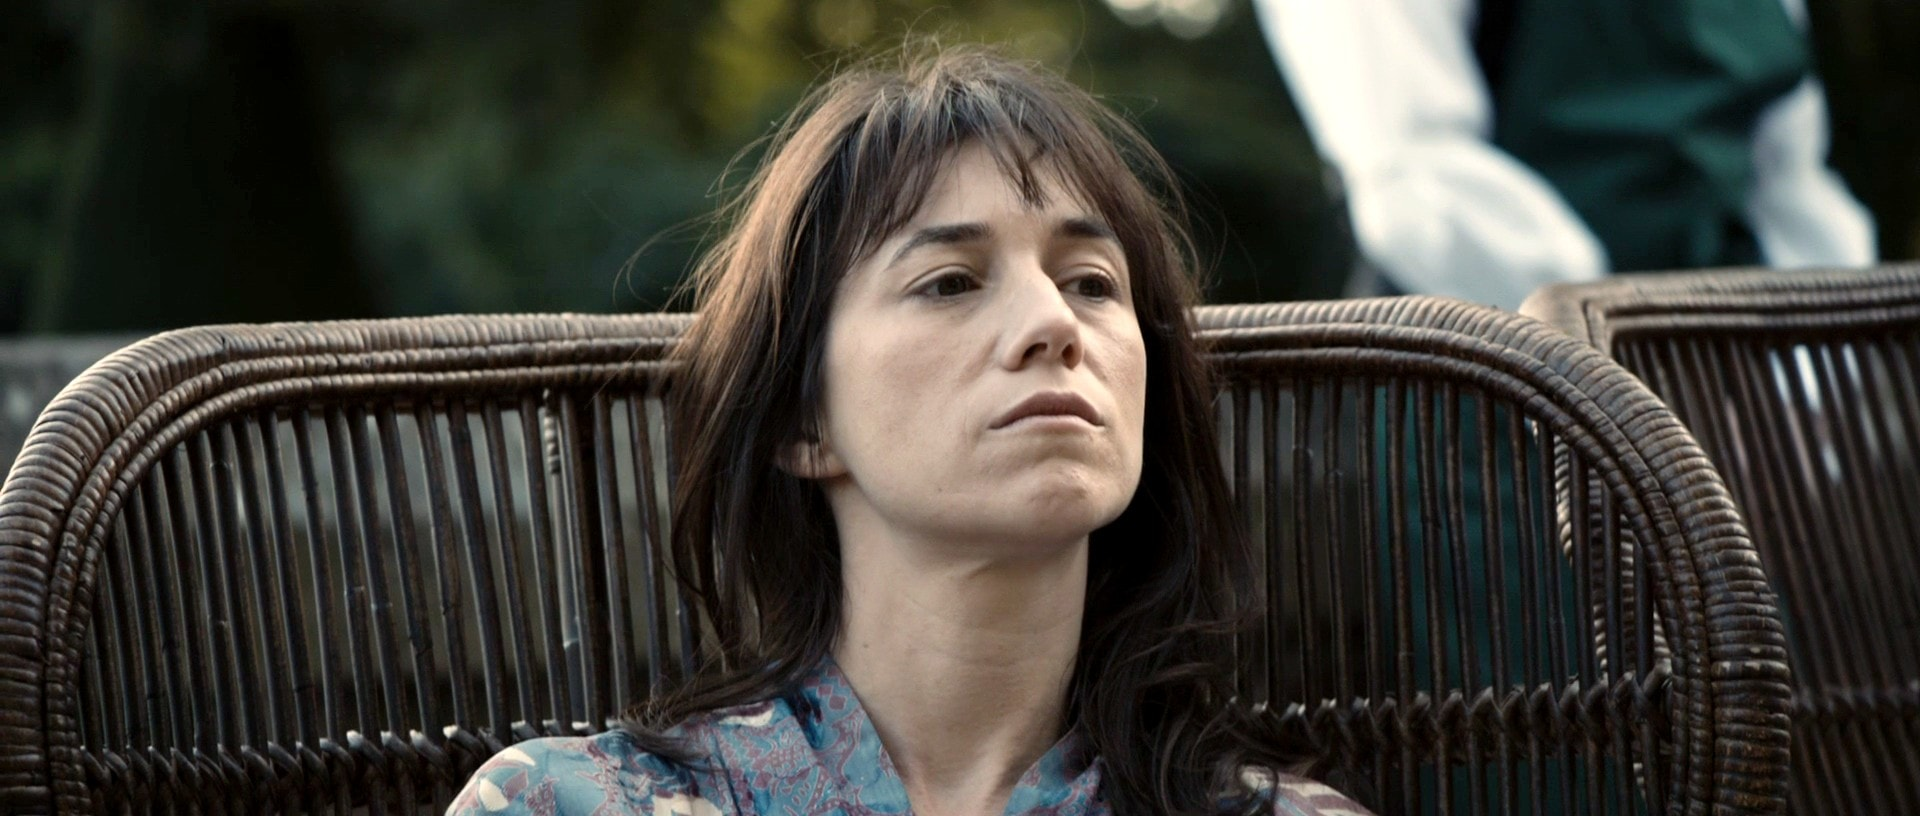 Charlotte Gainsbourg Download